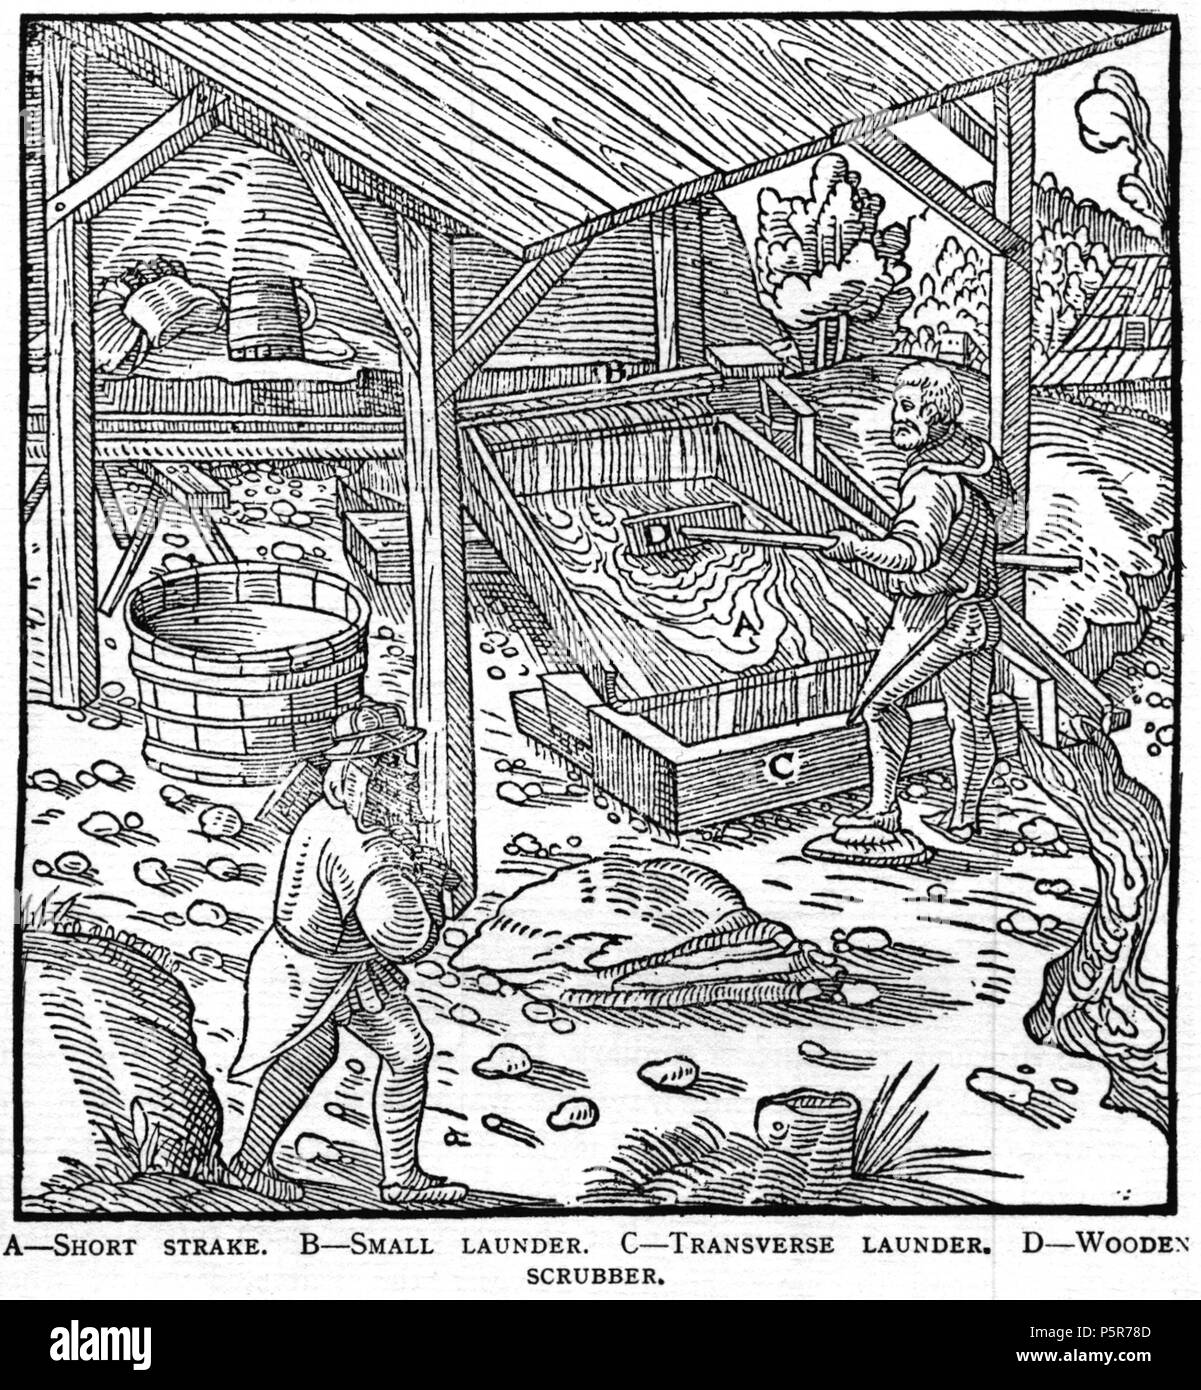 N/A. Woodcut illustration from De re metallica by Georgius Agricola. This is a 300dpi scan from the 1950 Dover edition of the 1913 Hoover translation of the 1556 reference. The Dover edition has slightly smaller size prints than the Hoover (which is a rare book). The woodcuts were recreated for the 1913 printing. Filenames (except for the title page) indicate the chapter (2, 3, 5, etc.) followed by the sequential number of the illustration. 2 May 2005, 07:13:06. TCO (talk) 223 Book8-28 - Stock Image